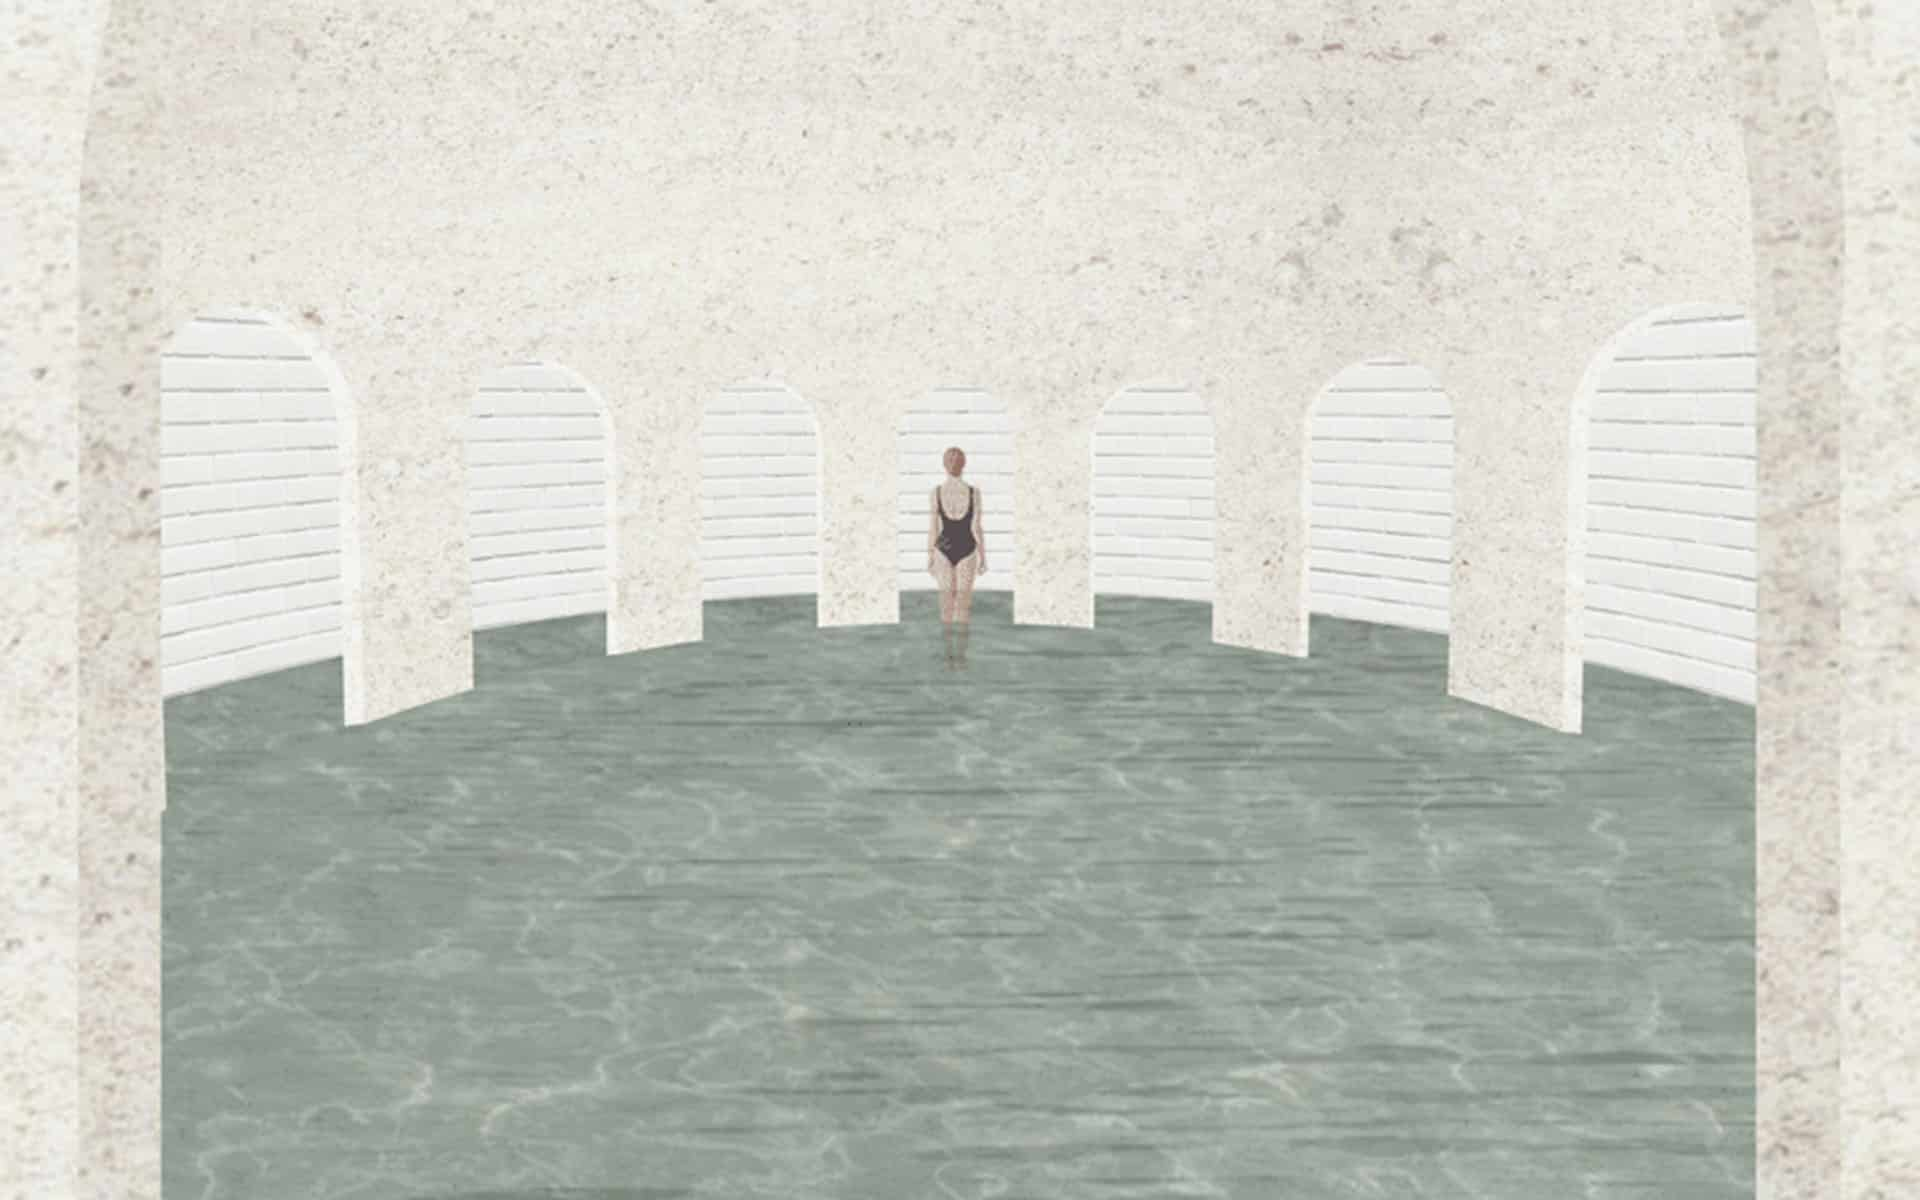 Louise Nissen envisions a sea sanctuary in Margate lido